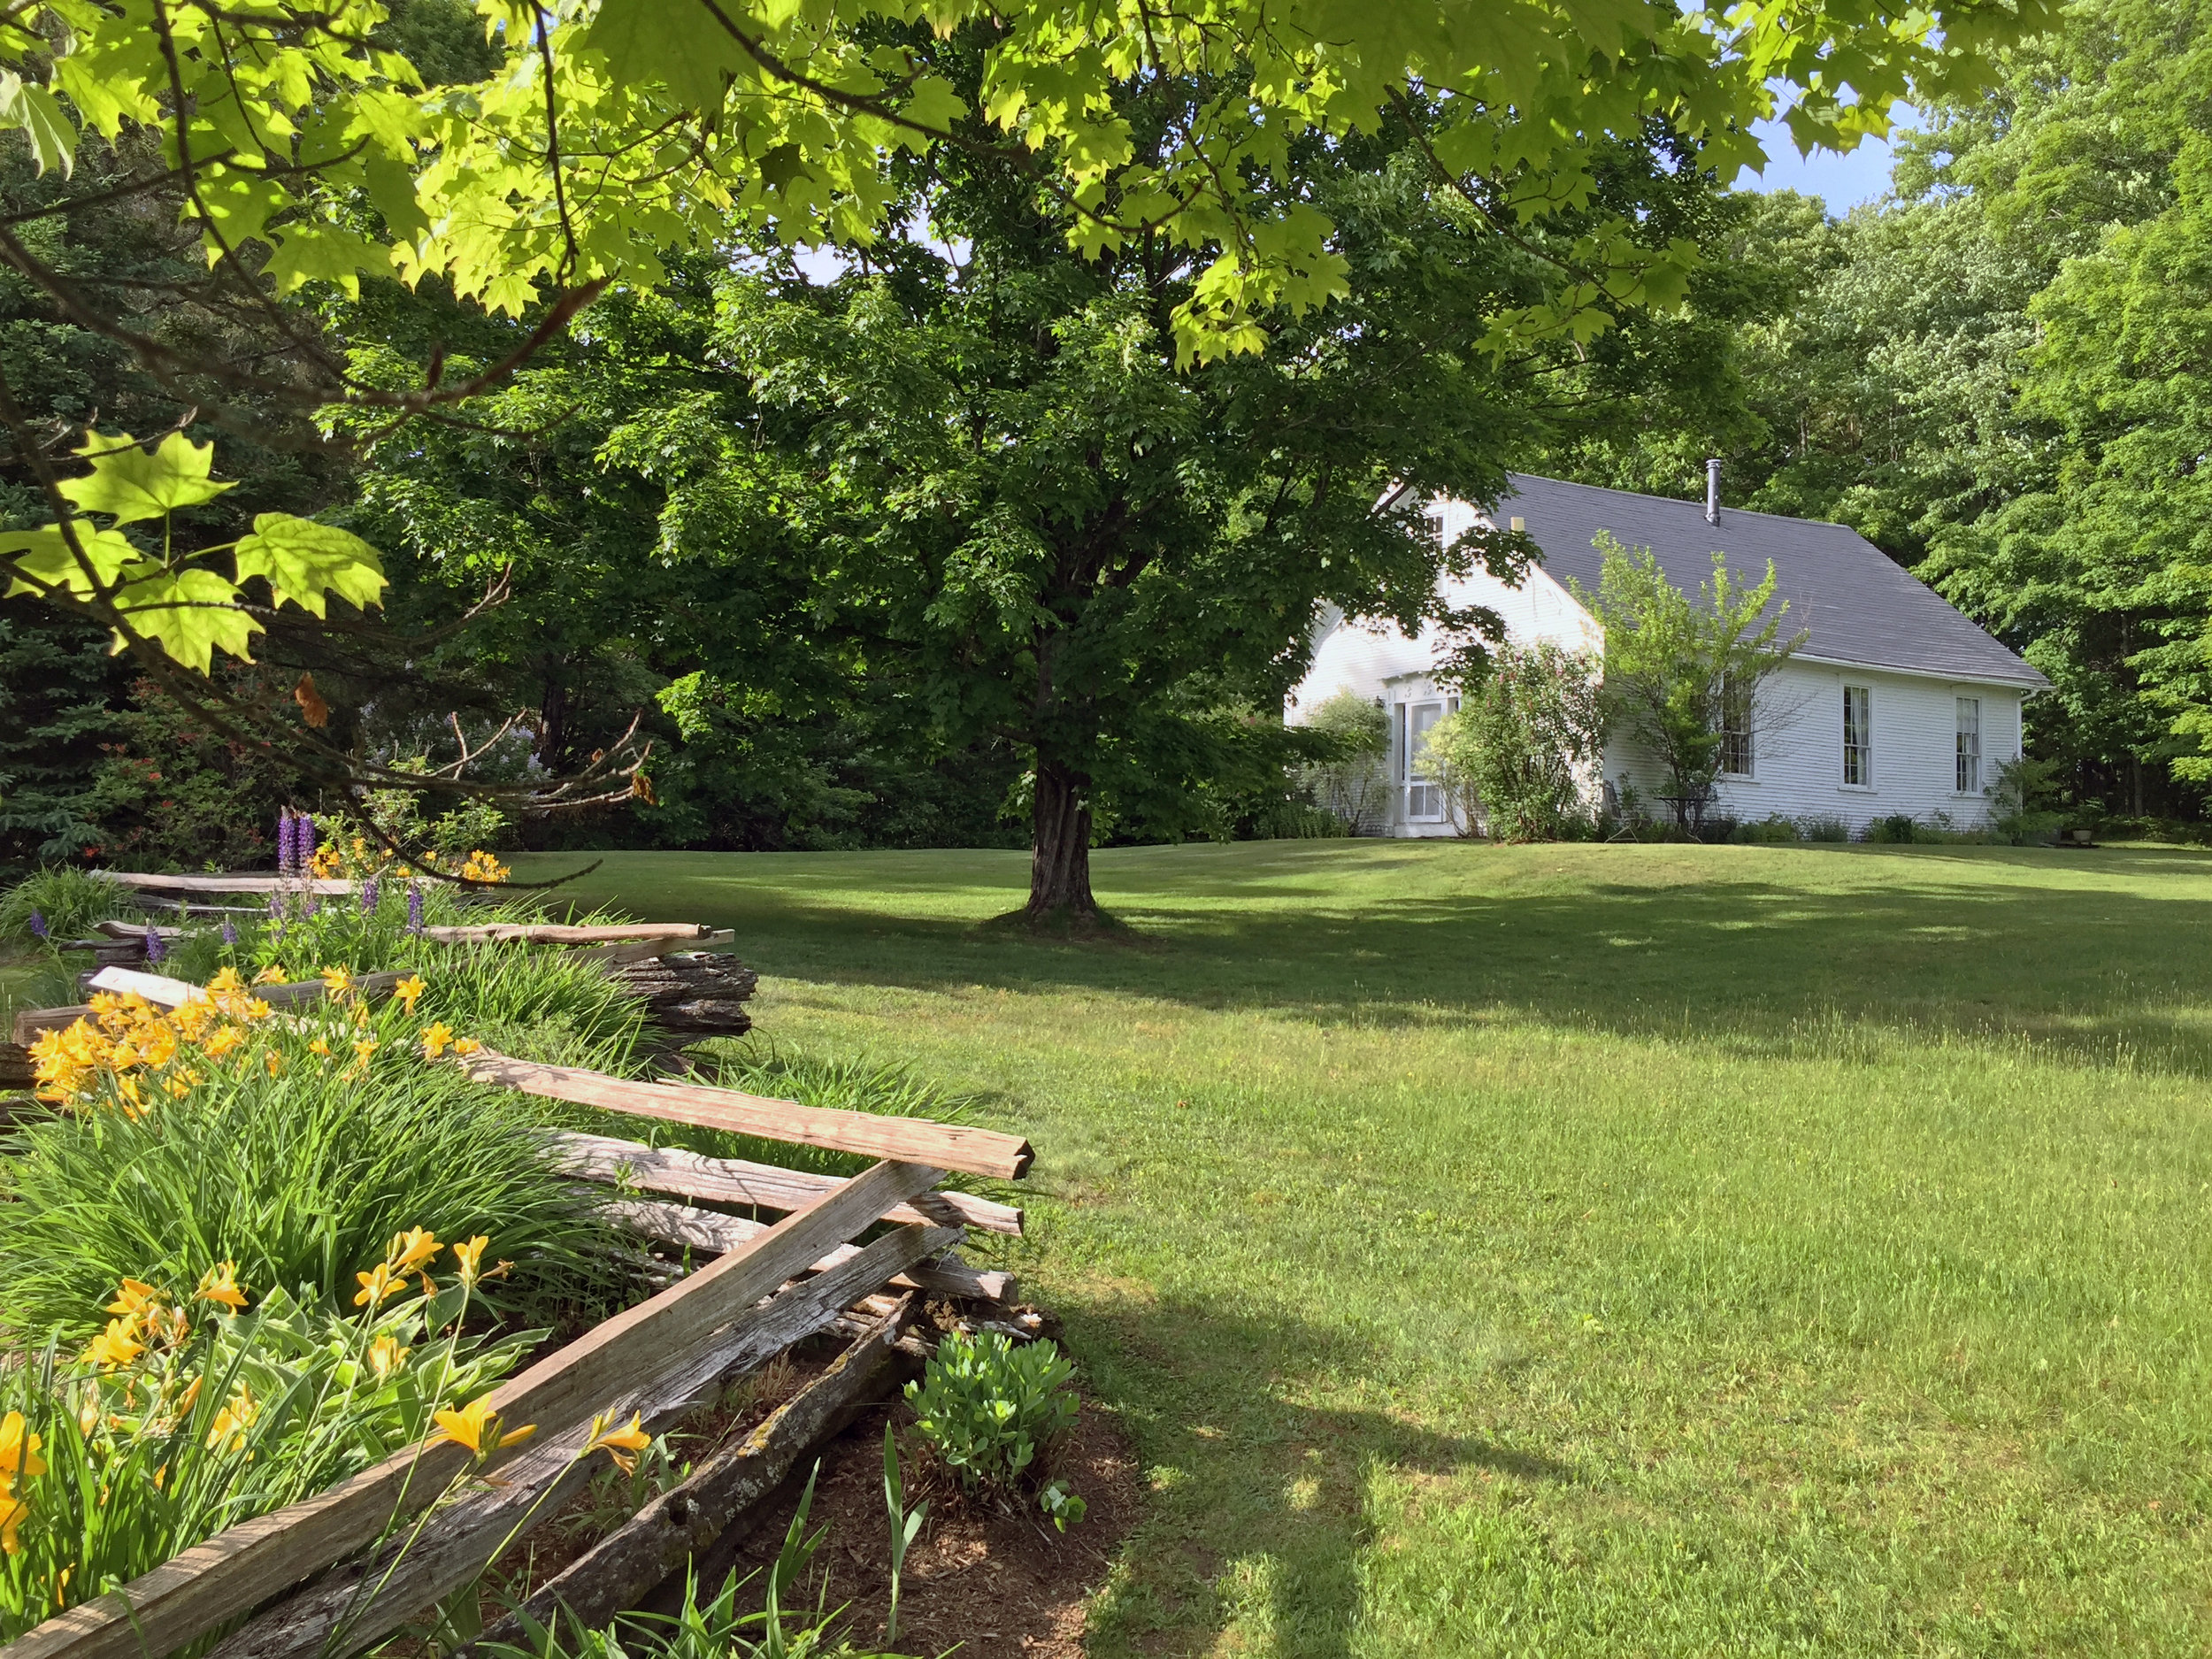 IMG_3437 Fifield Schoolhouse from Driveway Fence.jpg